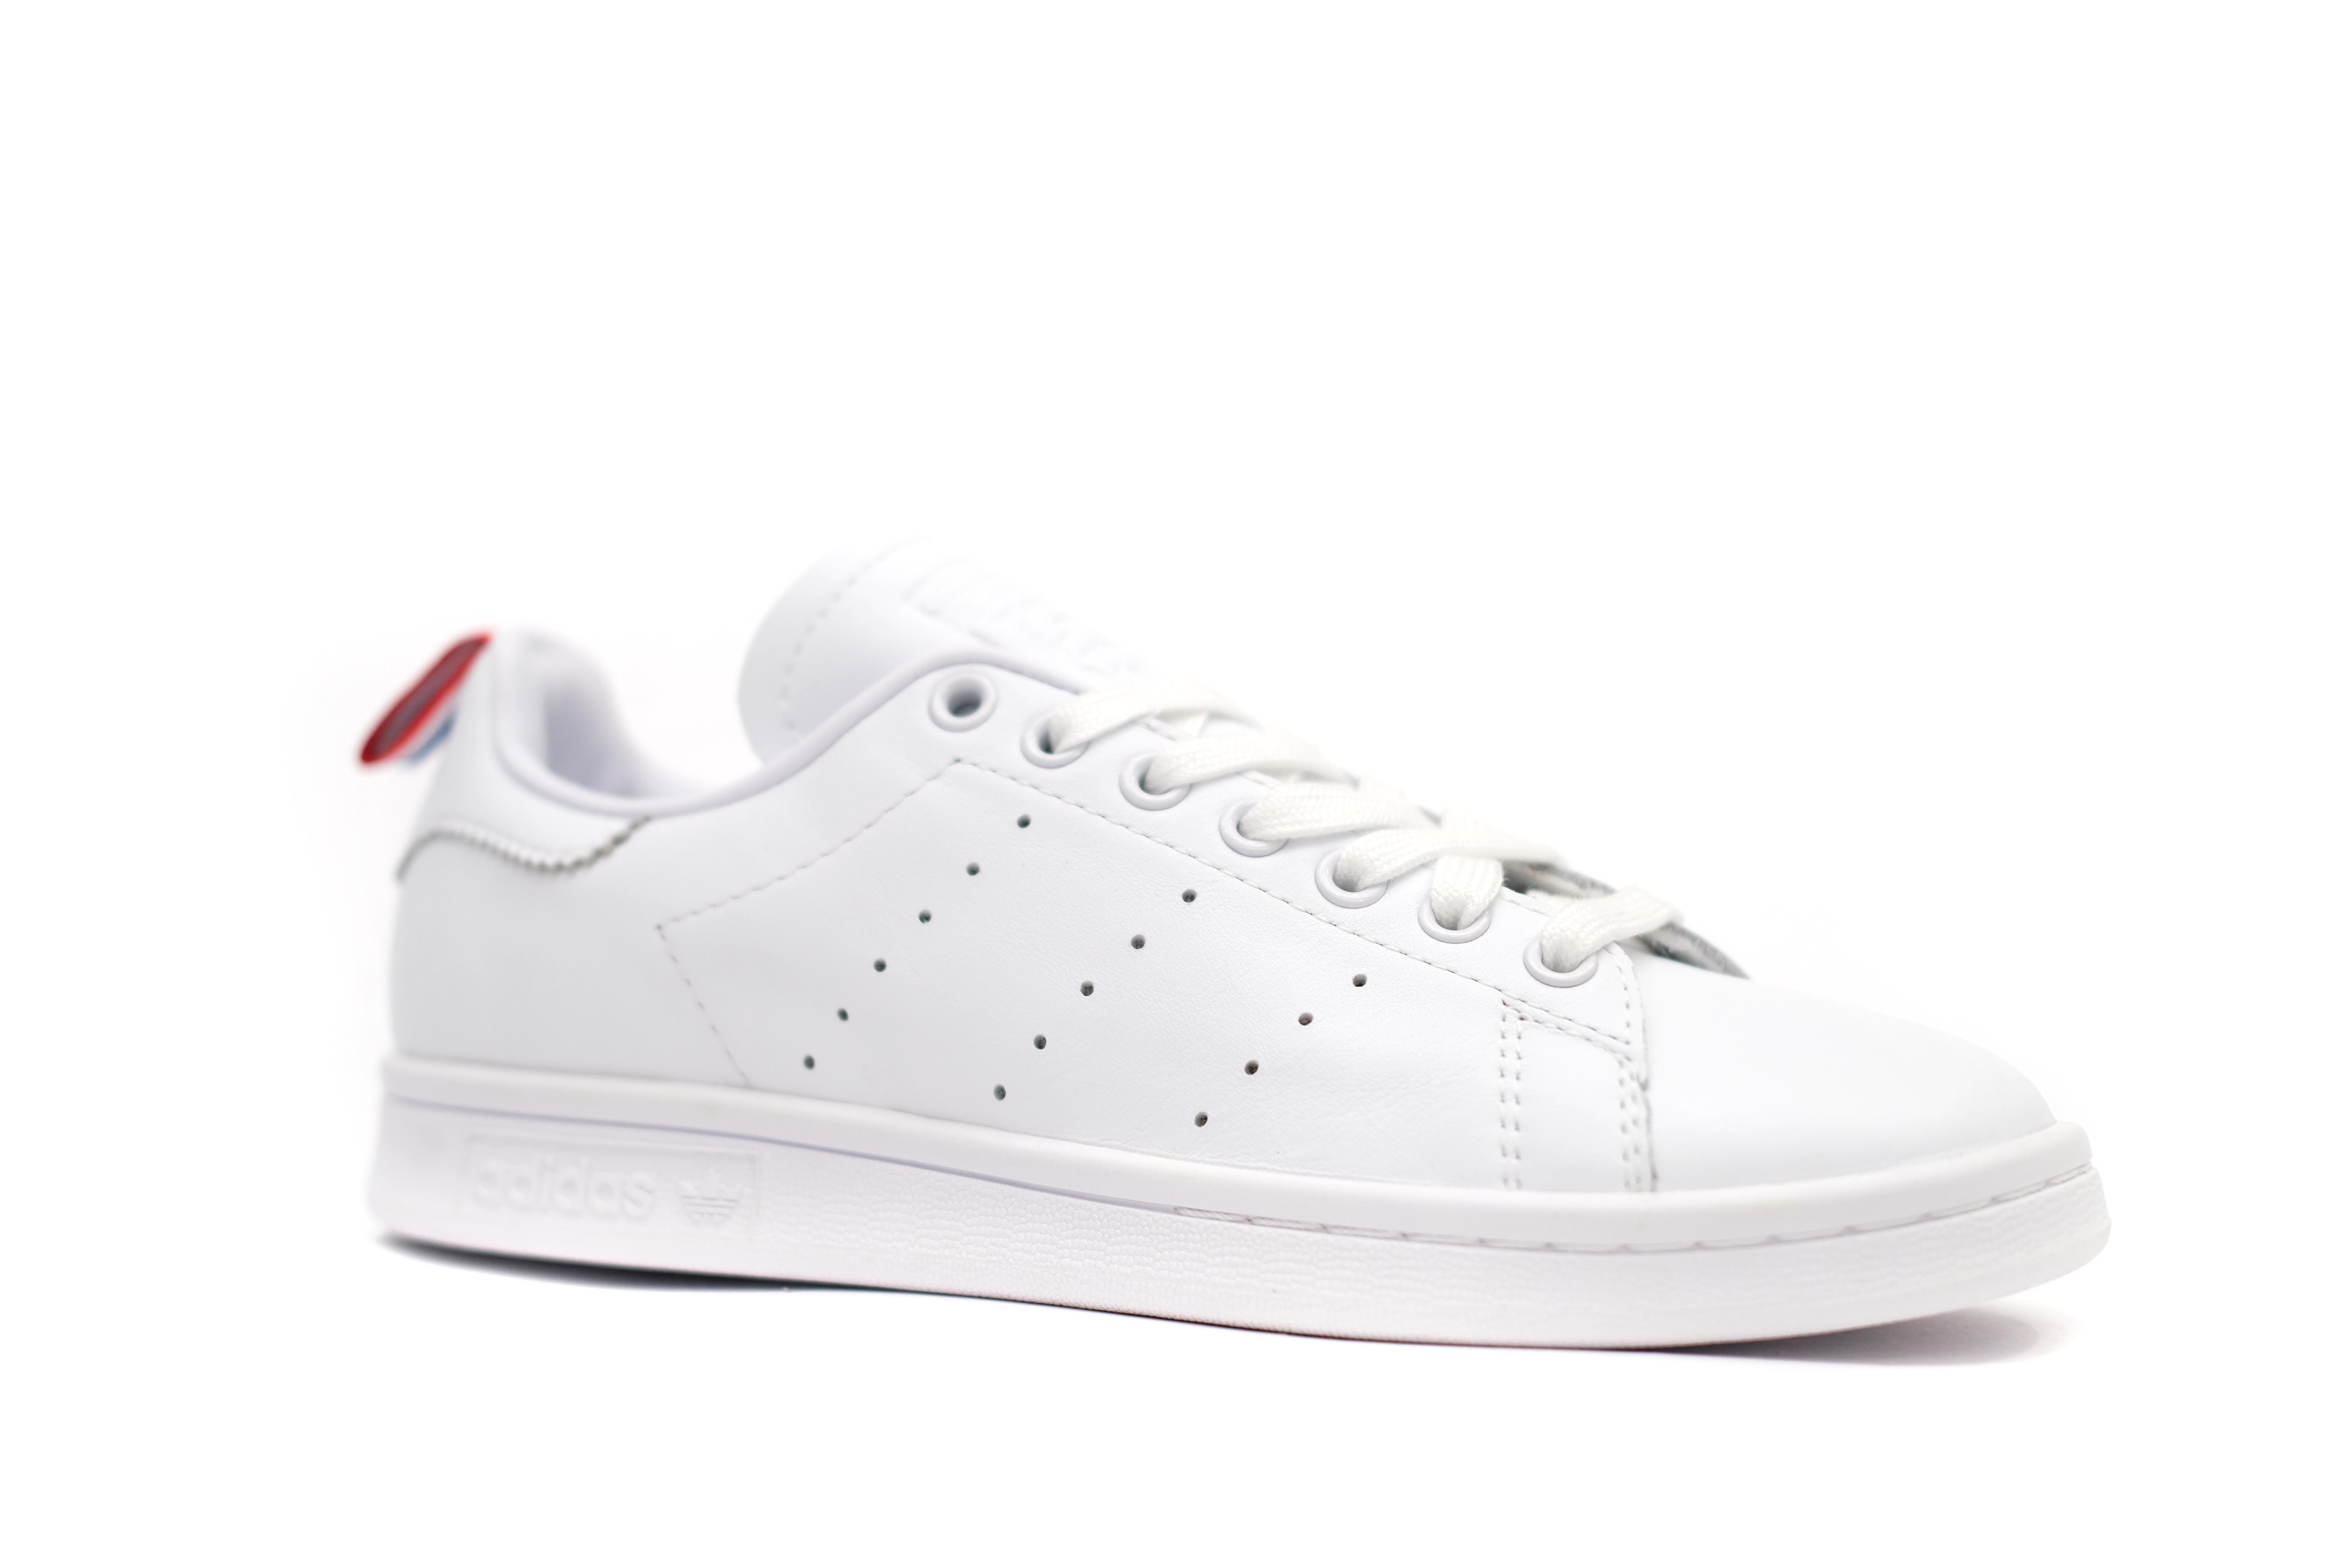 stan-smith-appears-with-a-new-tri-color-heel-tab